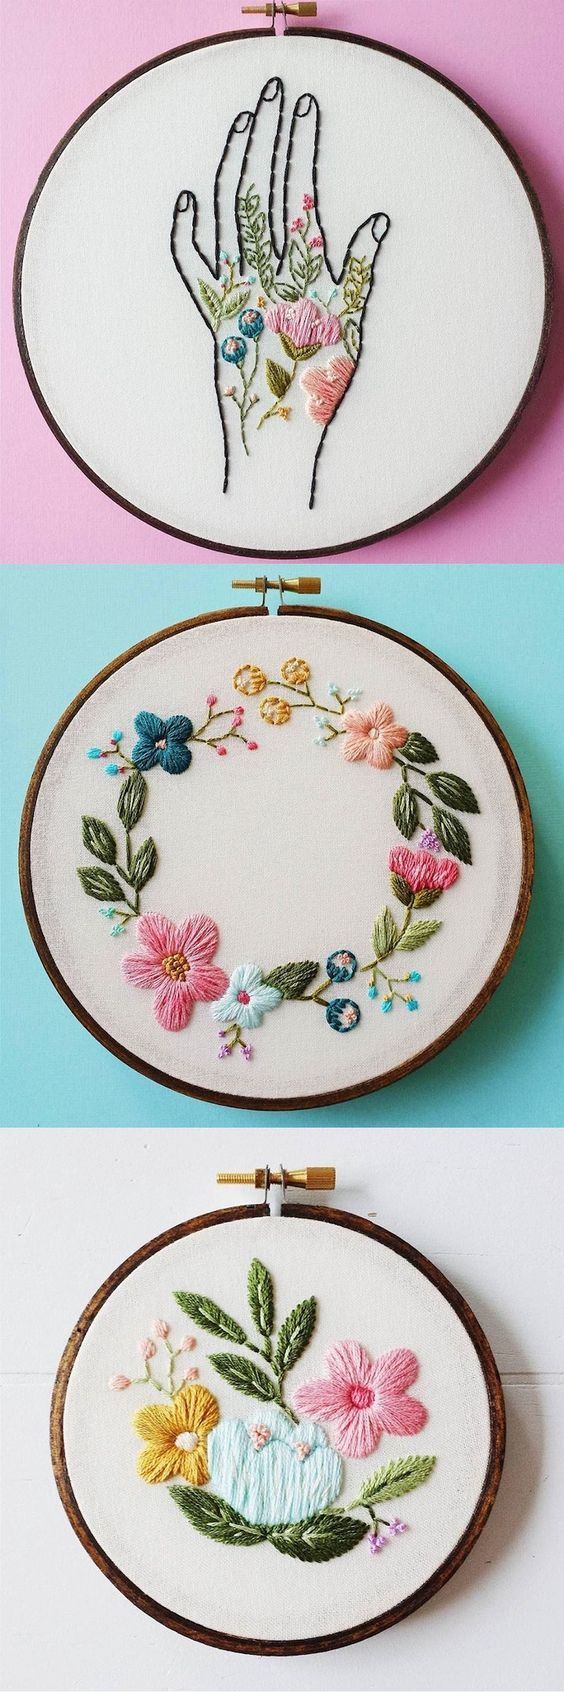 A brilliant combination of flowers and thread by Cinder & Honey: